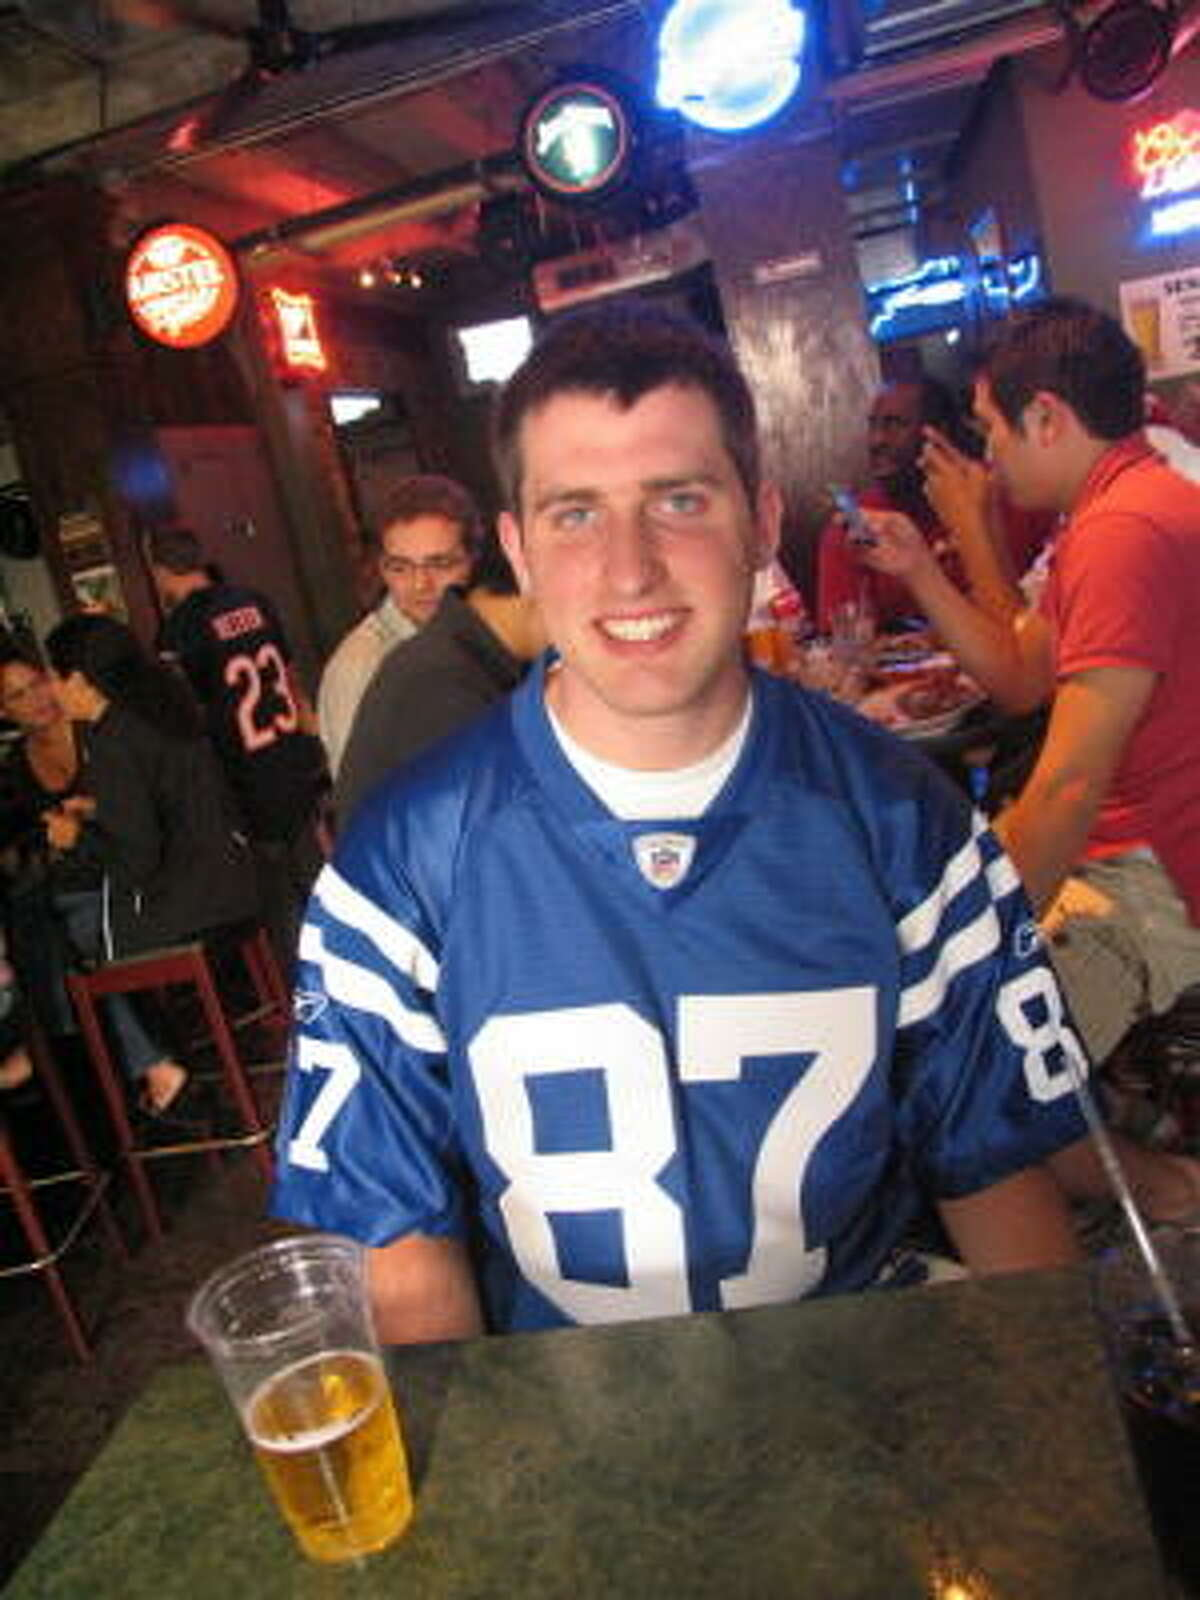 Fans spent their sunday afternoon with football on the big screen and buffalo wings in hand. Pictured: Tom Eline